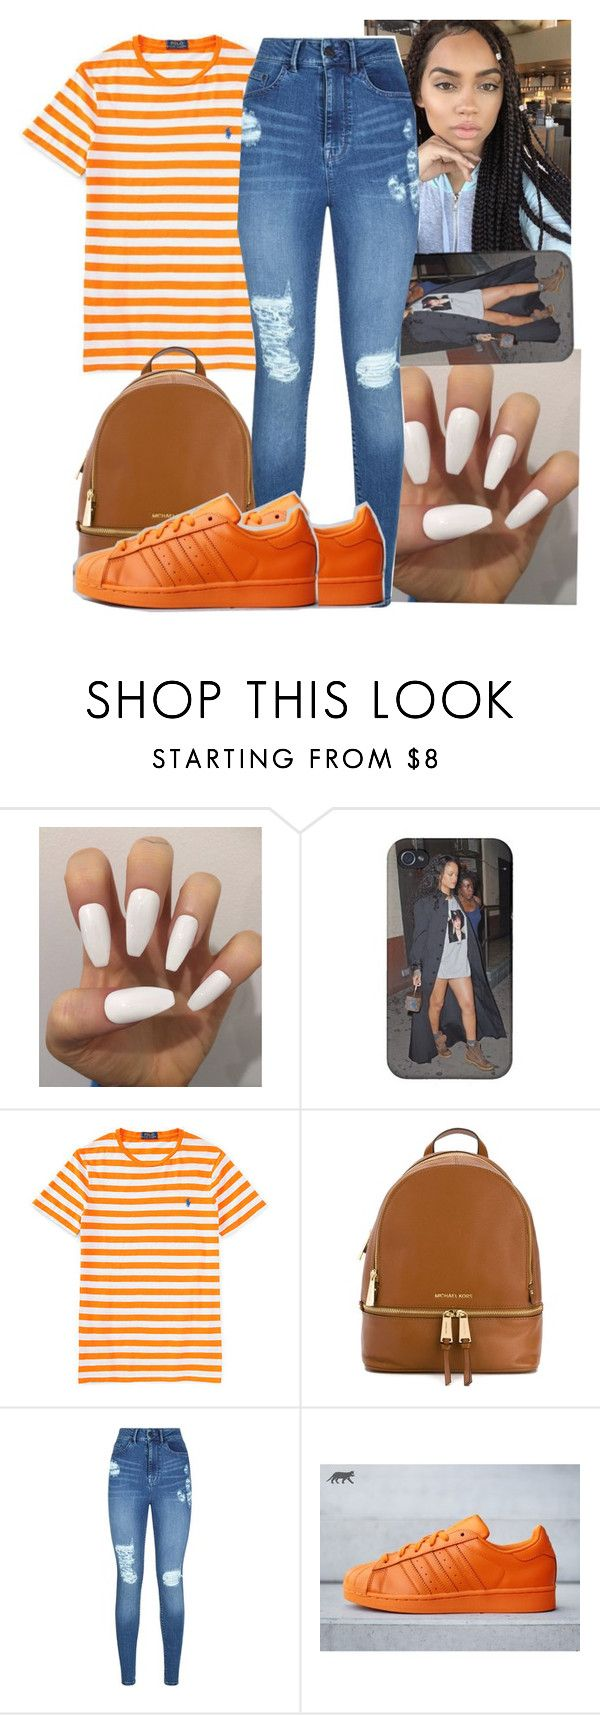 """""""Polo Contest"""" by shadea04 ❤ liked on Polyvore featuring Ralph Lauren, MICHAEL Michael Kors, Lipsy and adidas"""